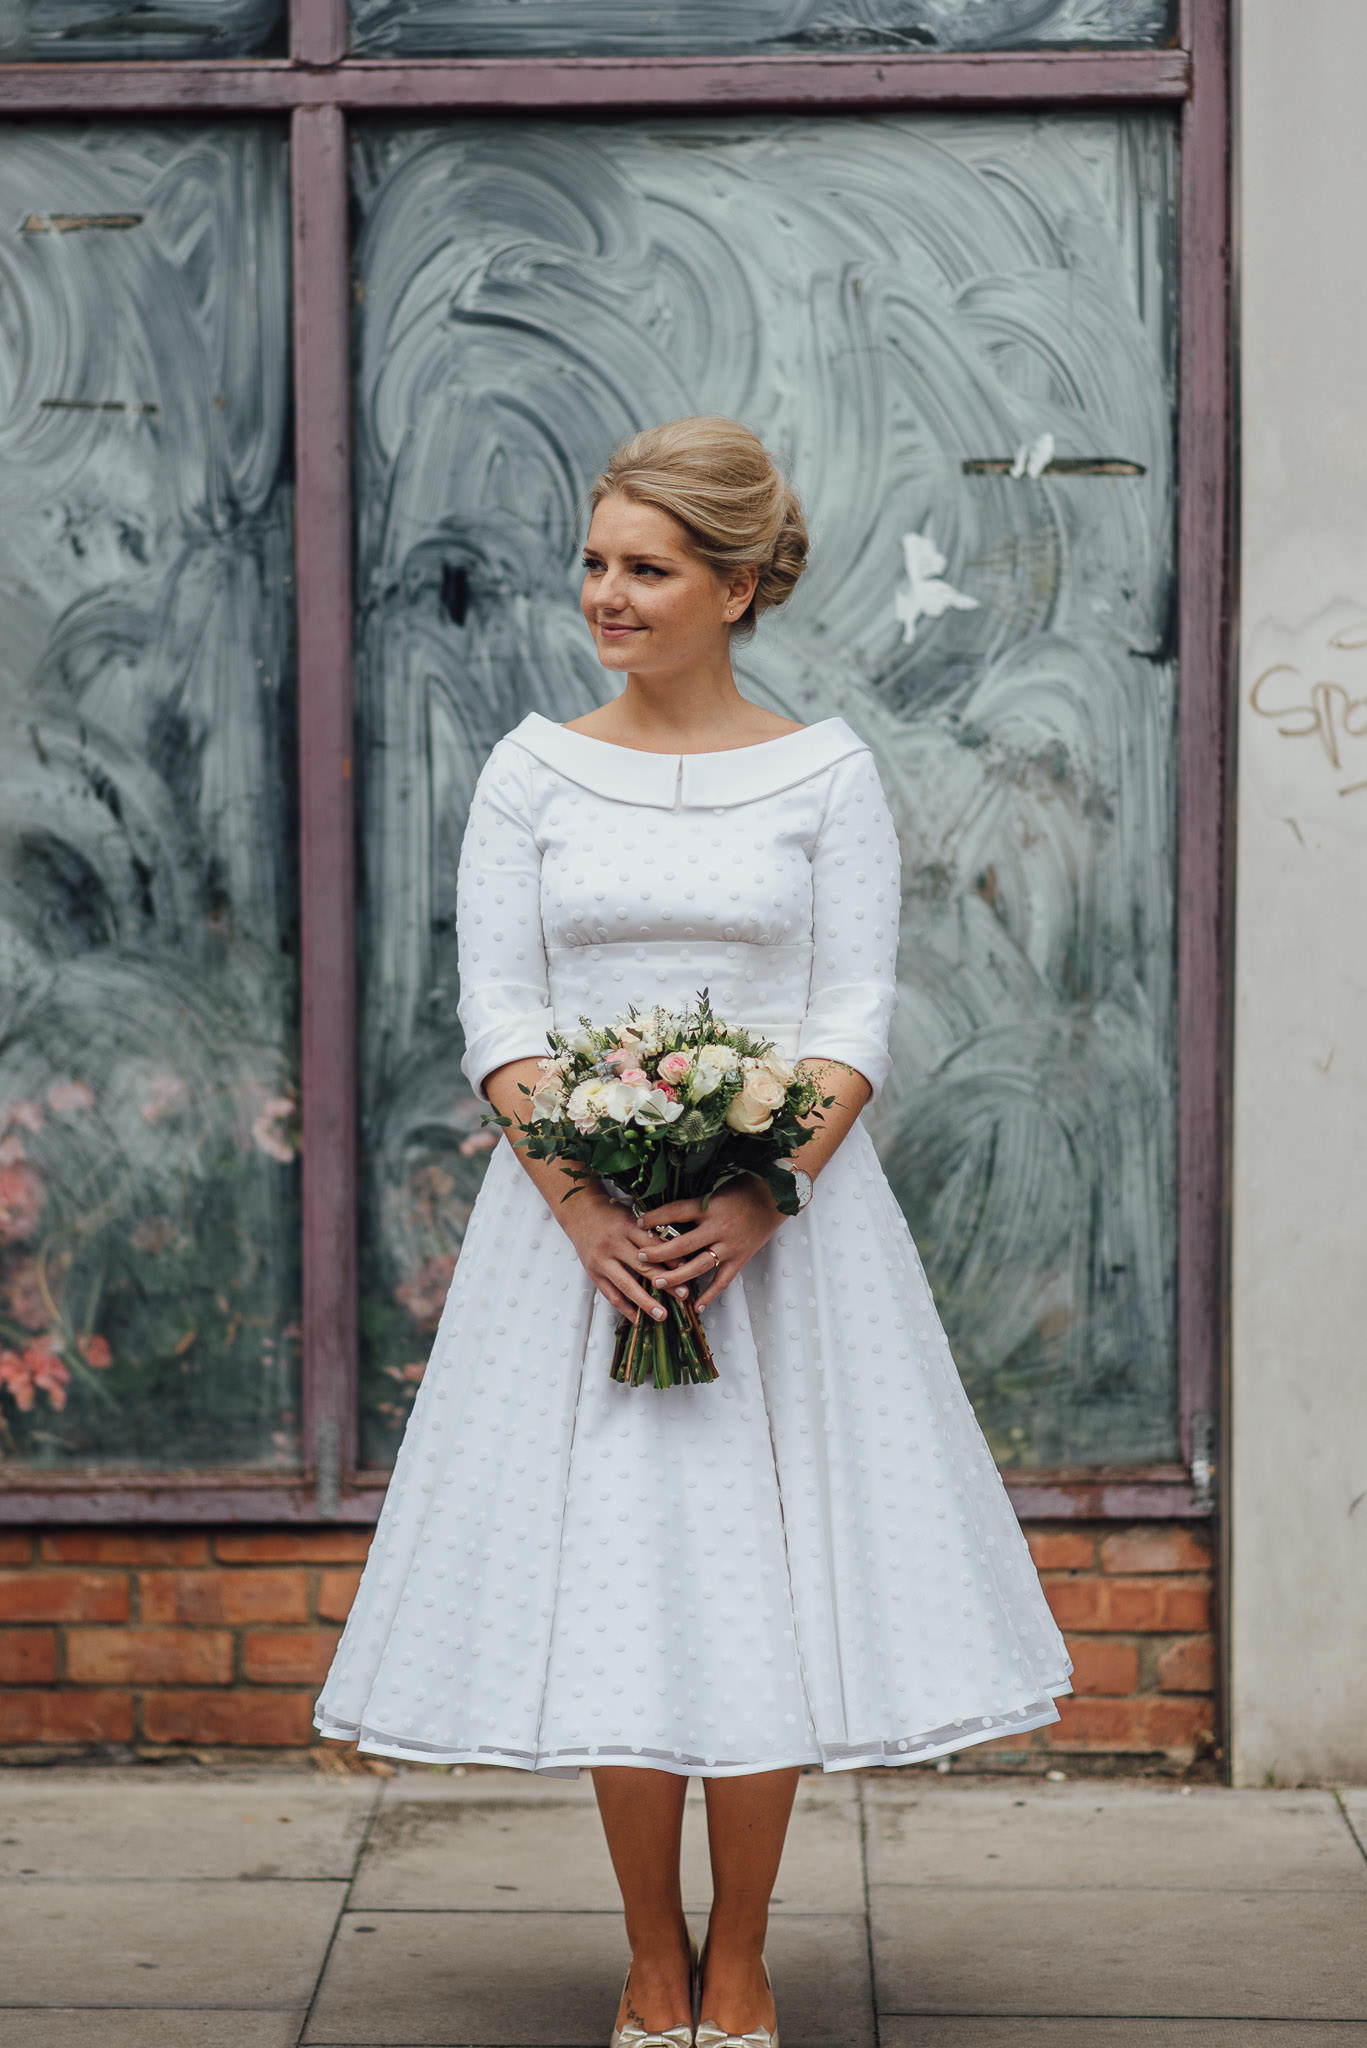 Bride in vintage tea dress in stoke newington town hall wedding by creative and alternative london wedding photographer the shannons photography